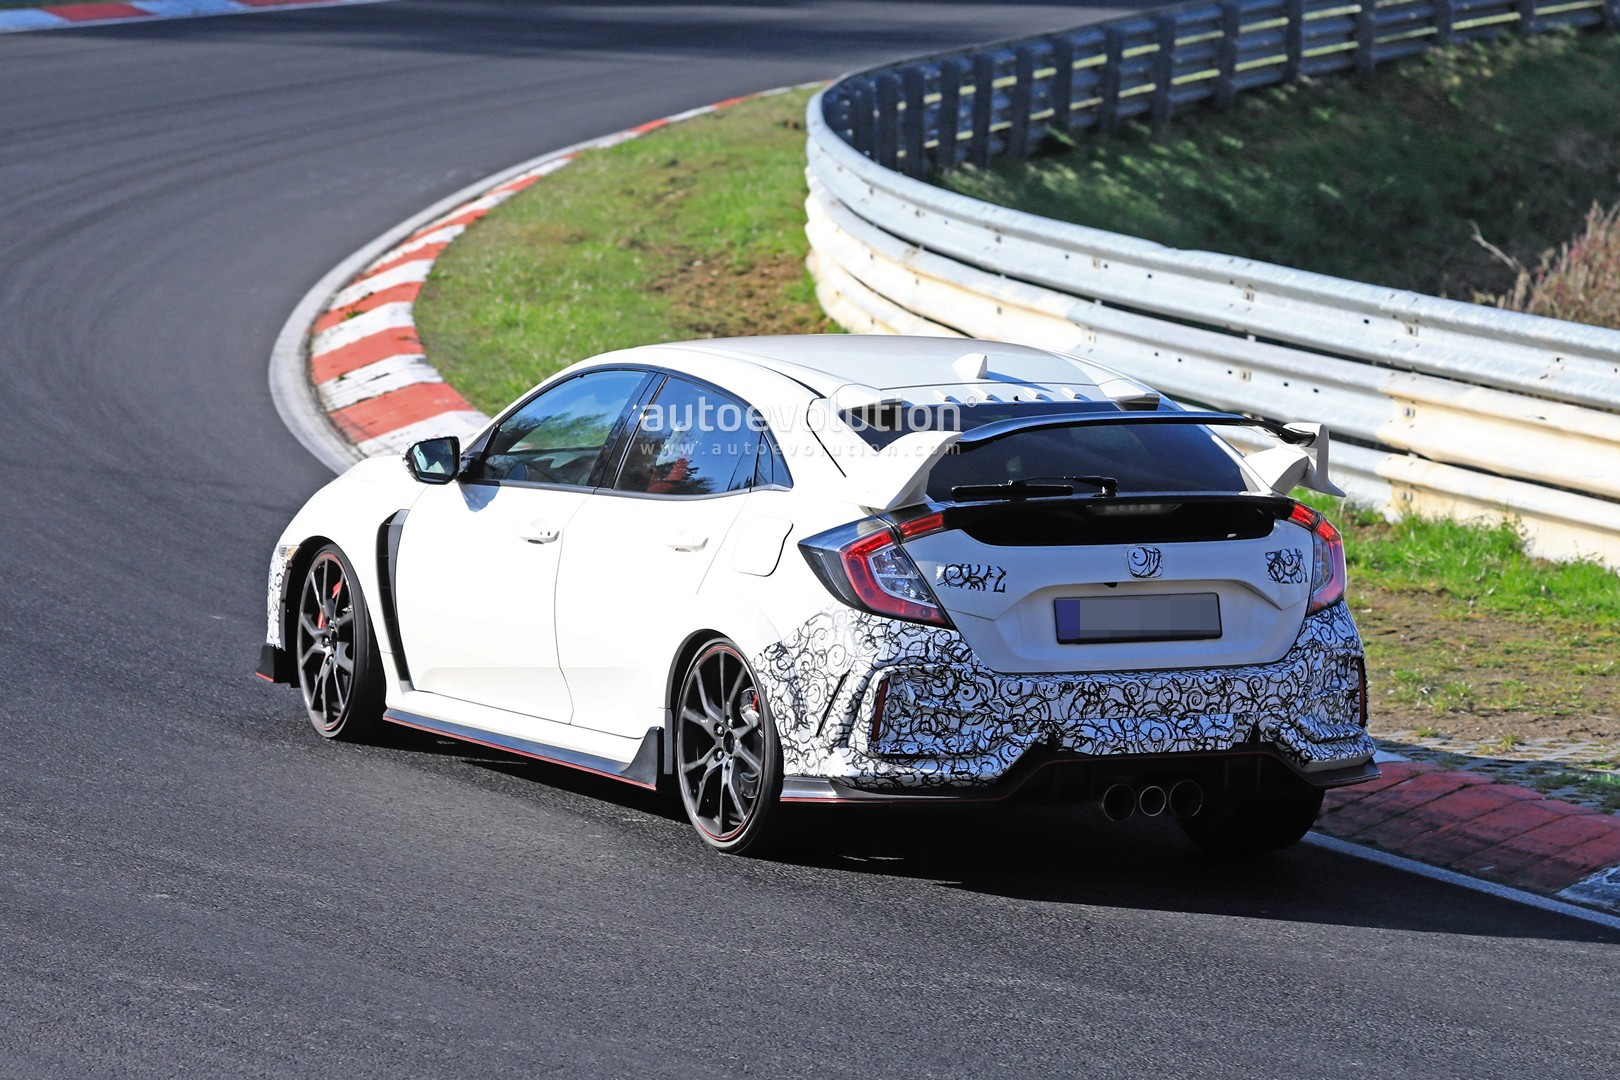 2020 Honda Civic Type R Prototypes Spied at the ...